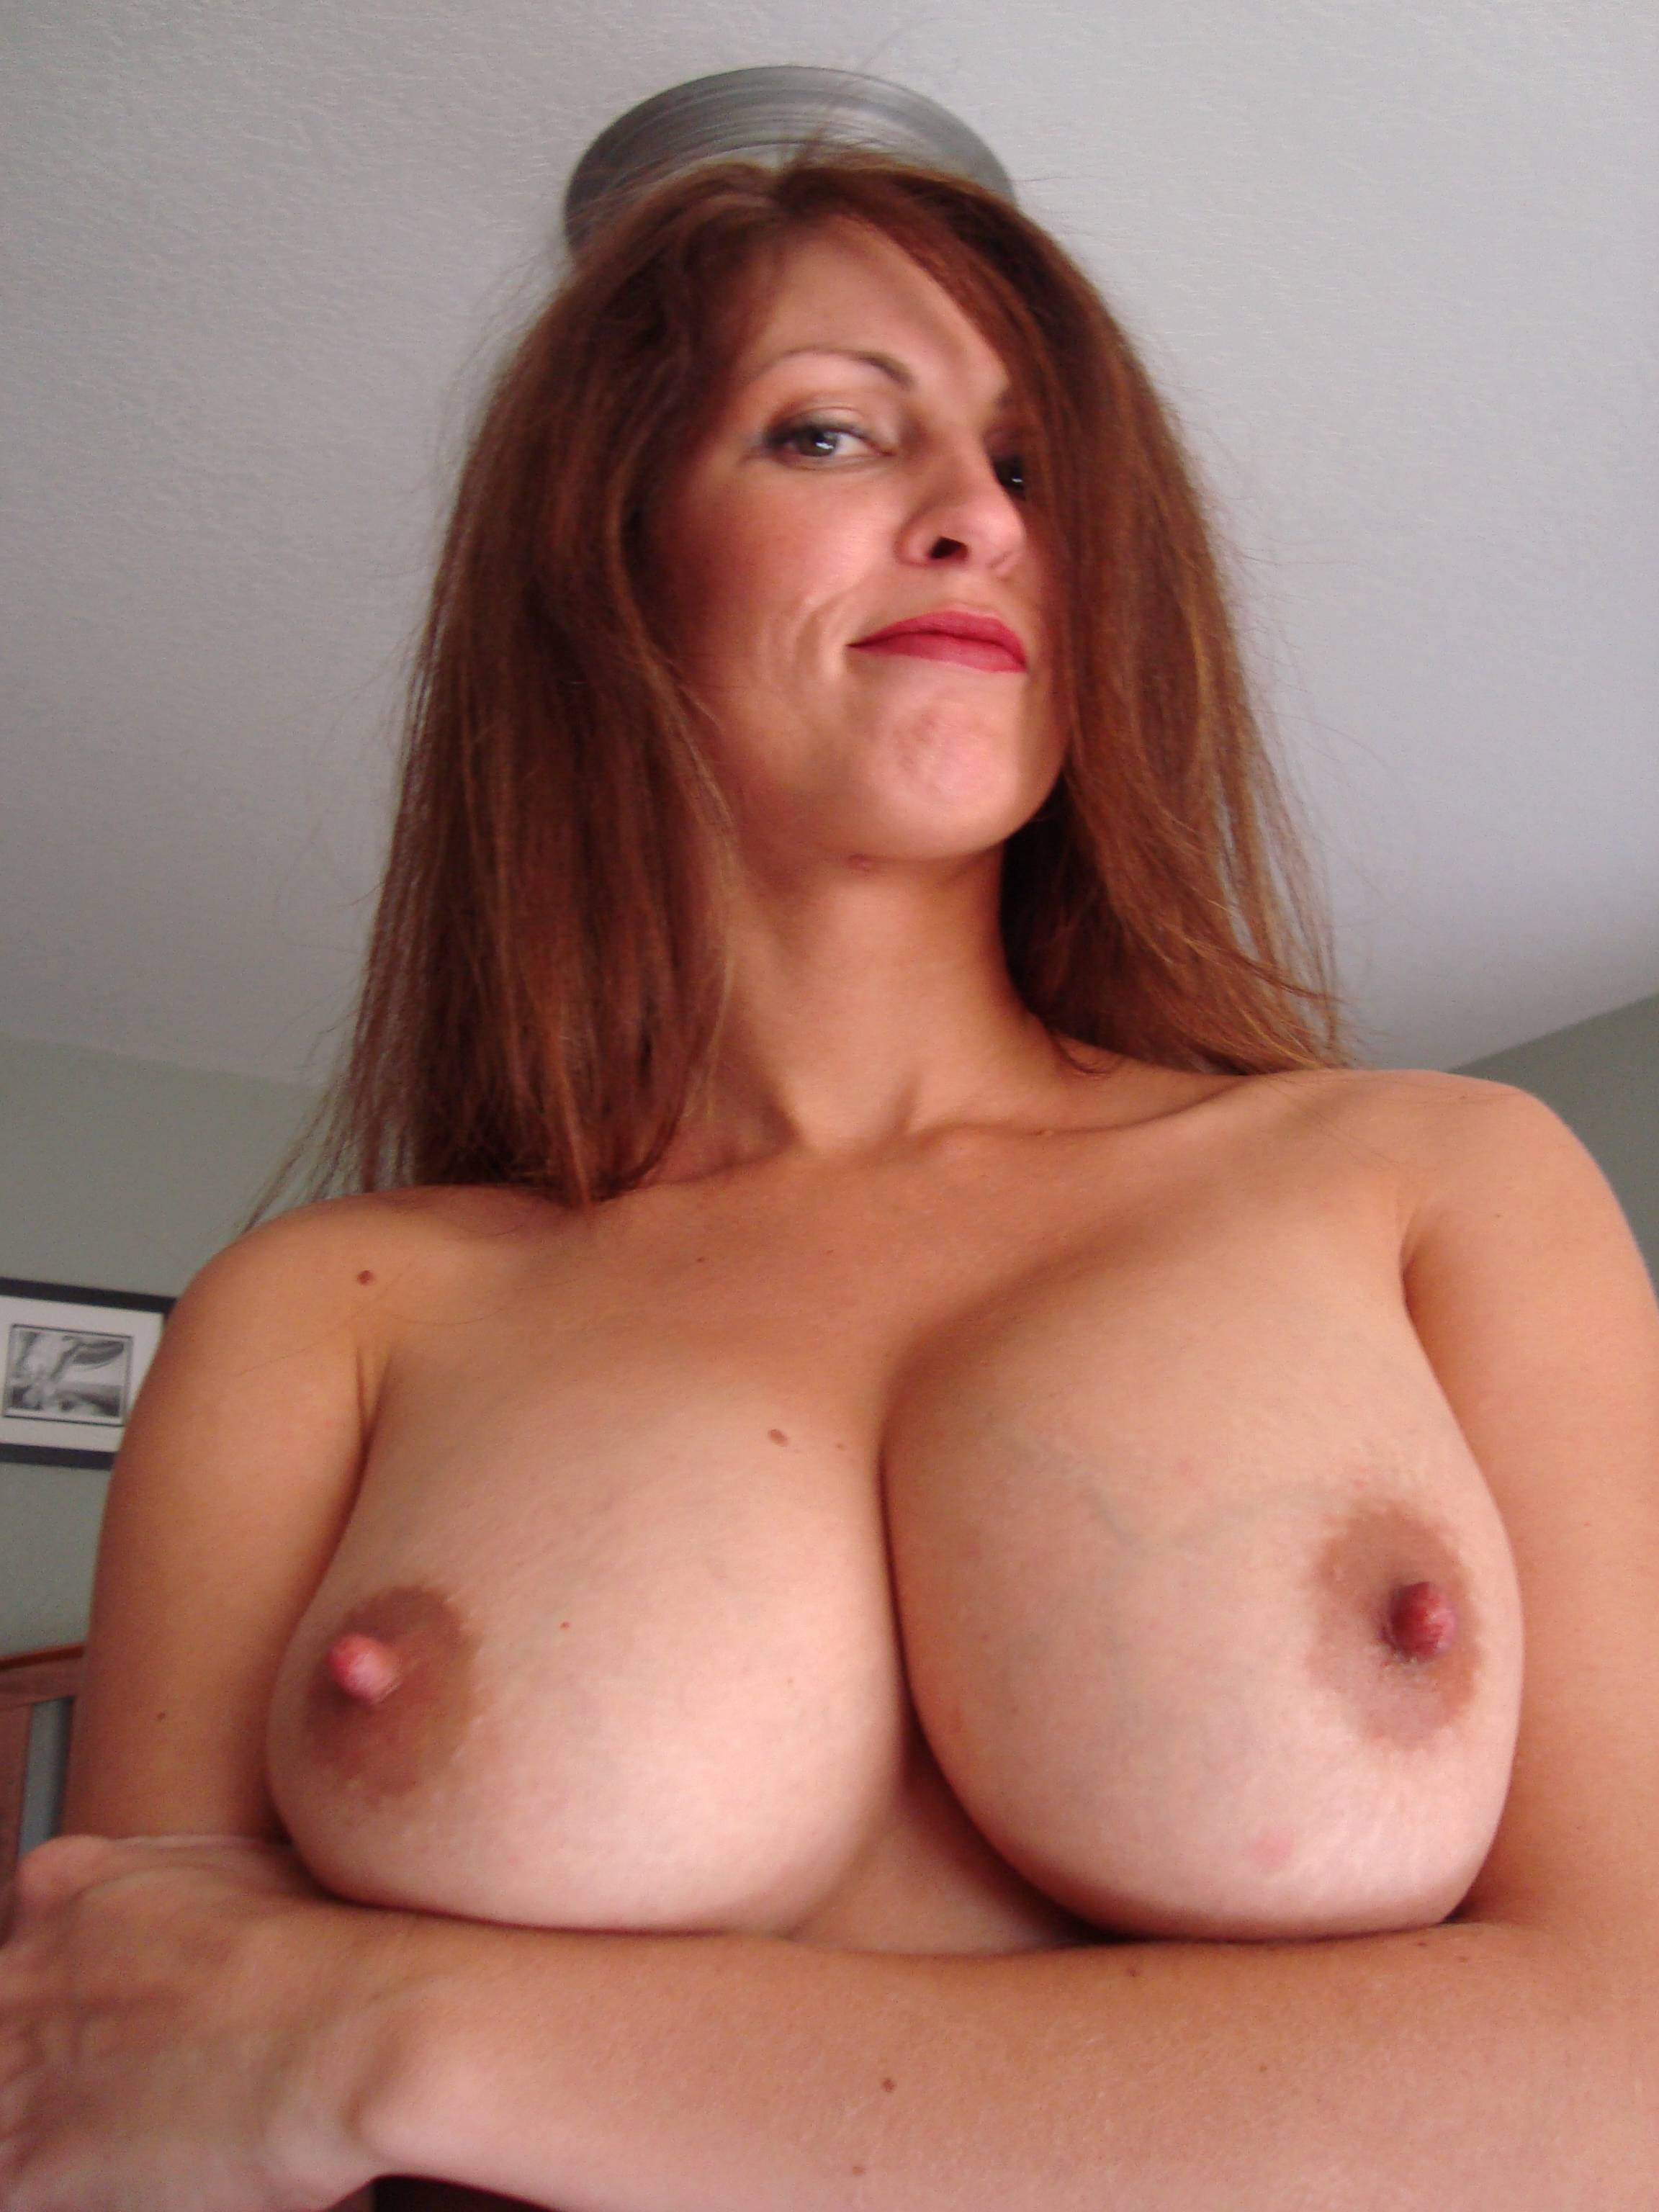 Gorgeous amateur mature wife showing her big natural boobs